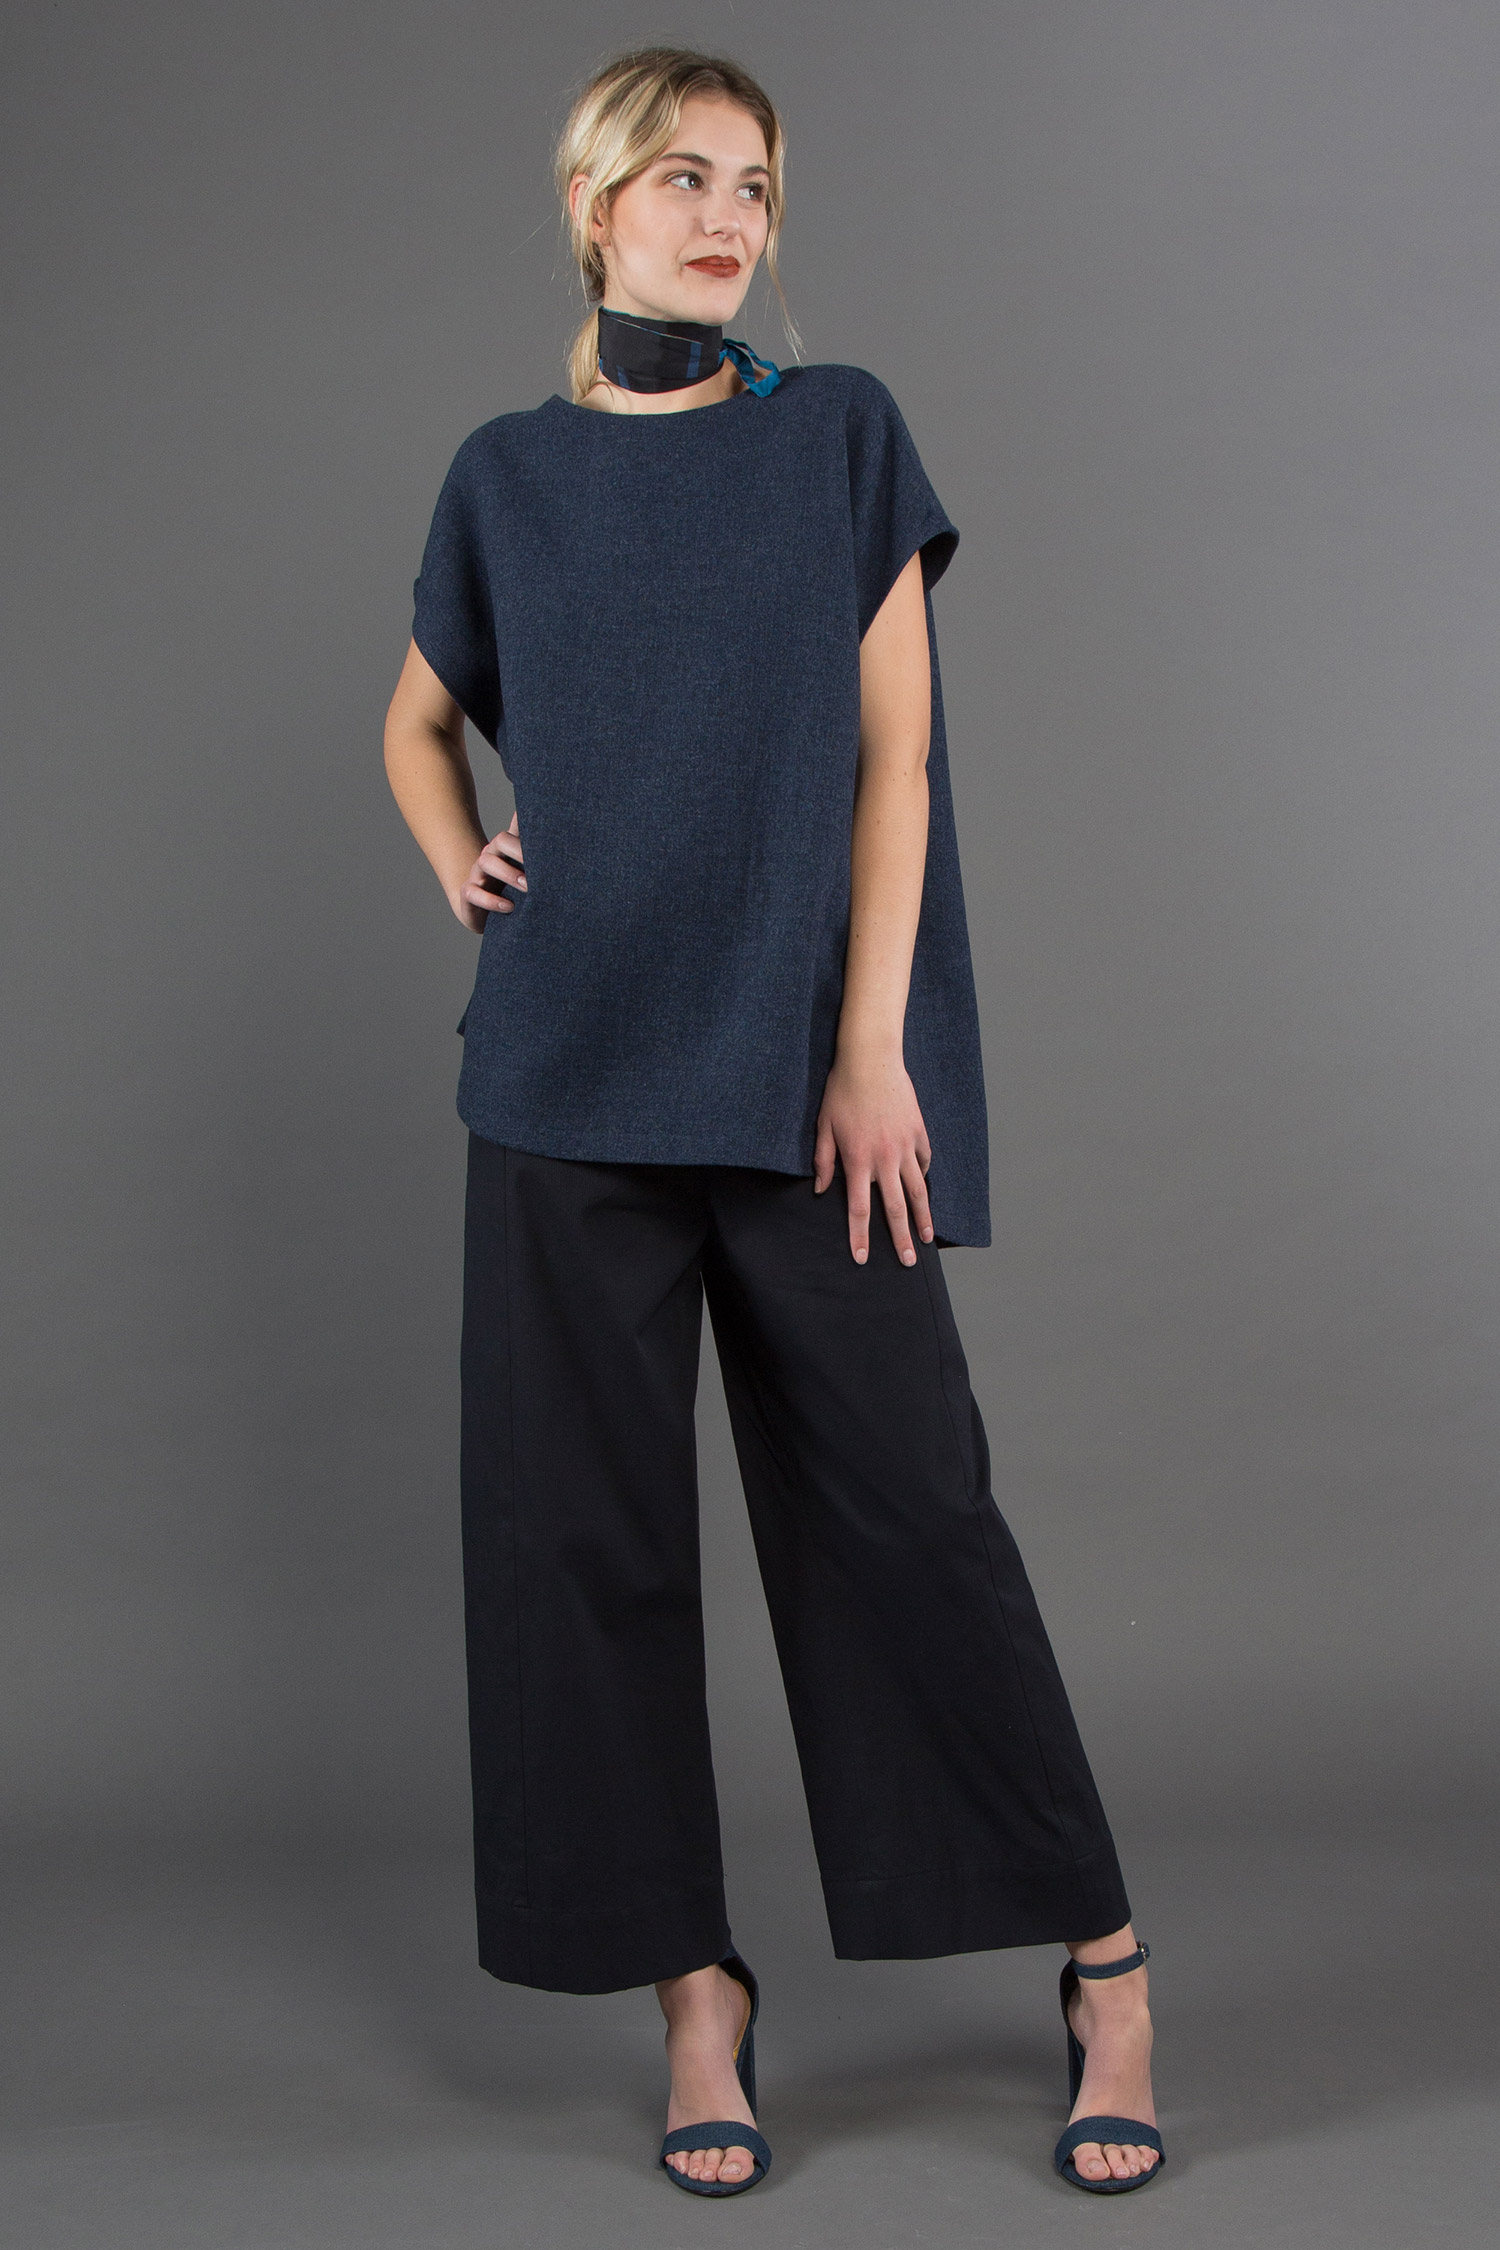 Popover Vest + Panel Pant + Skinny Wrap Belt